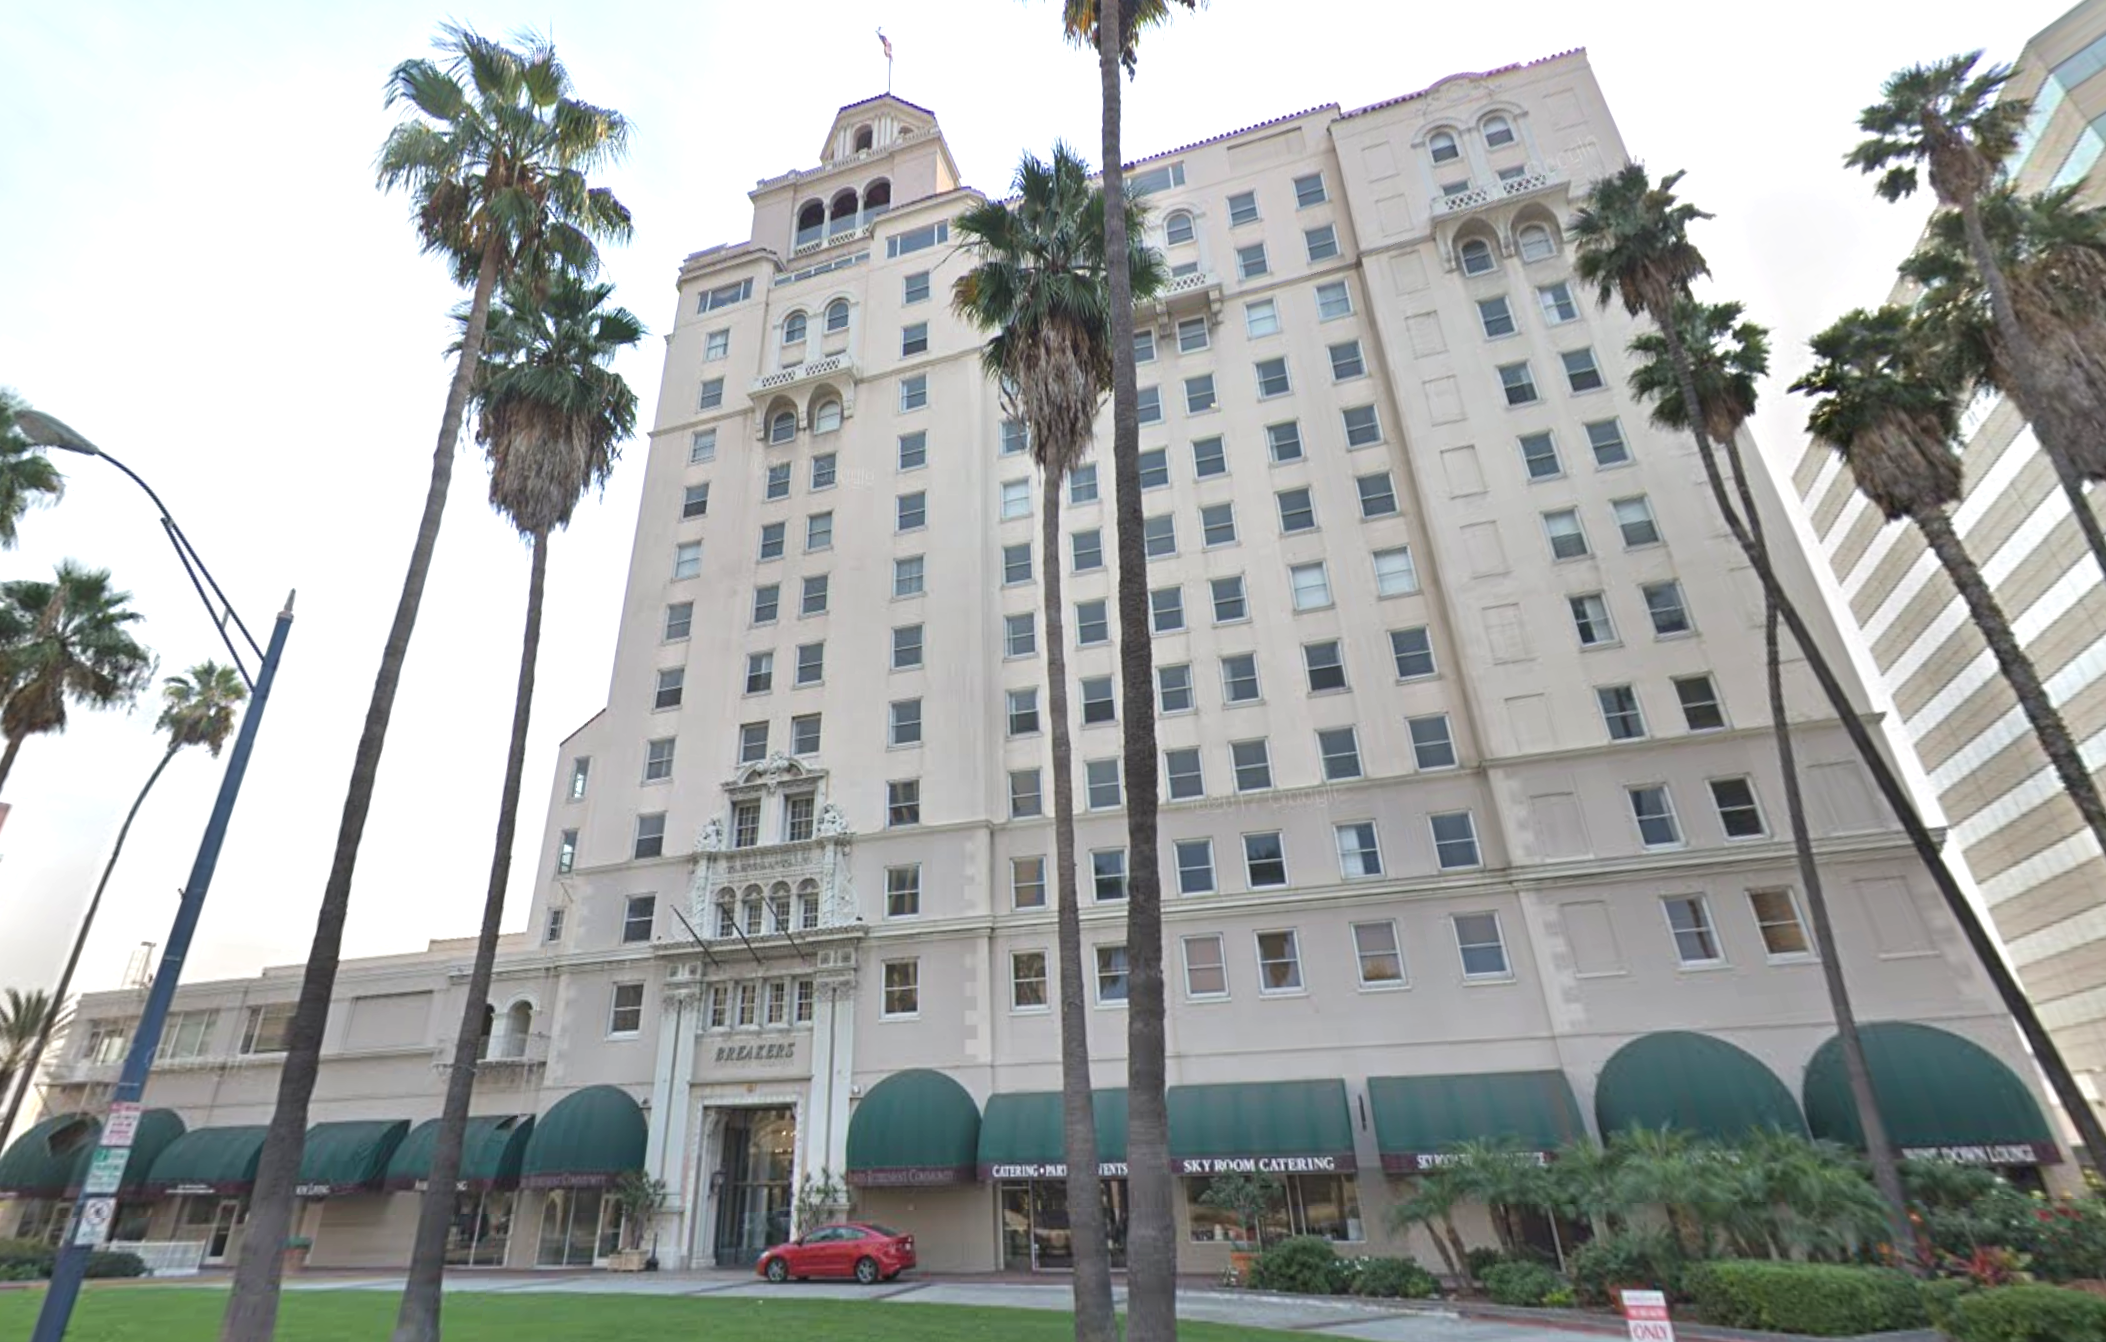 Long Beach S Historic Breakers Building To Reopen As